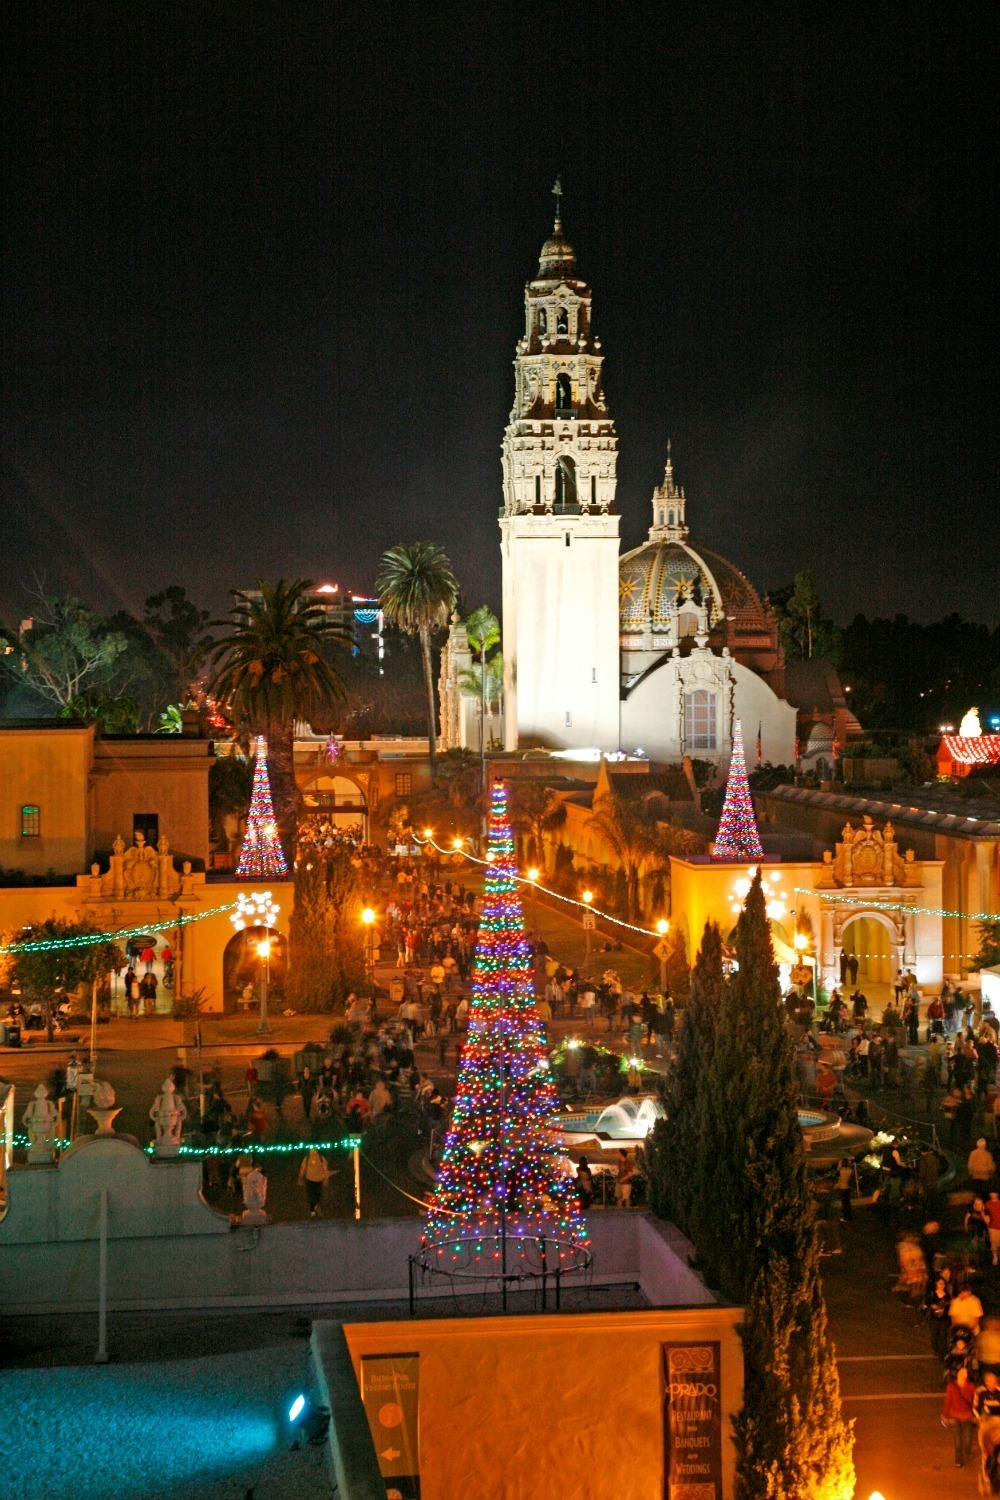 Holiday Events in San Diego - San Diego December (2018) Events